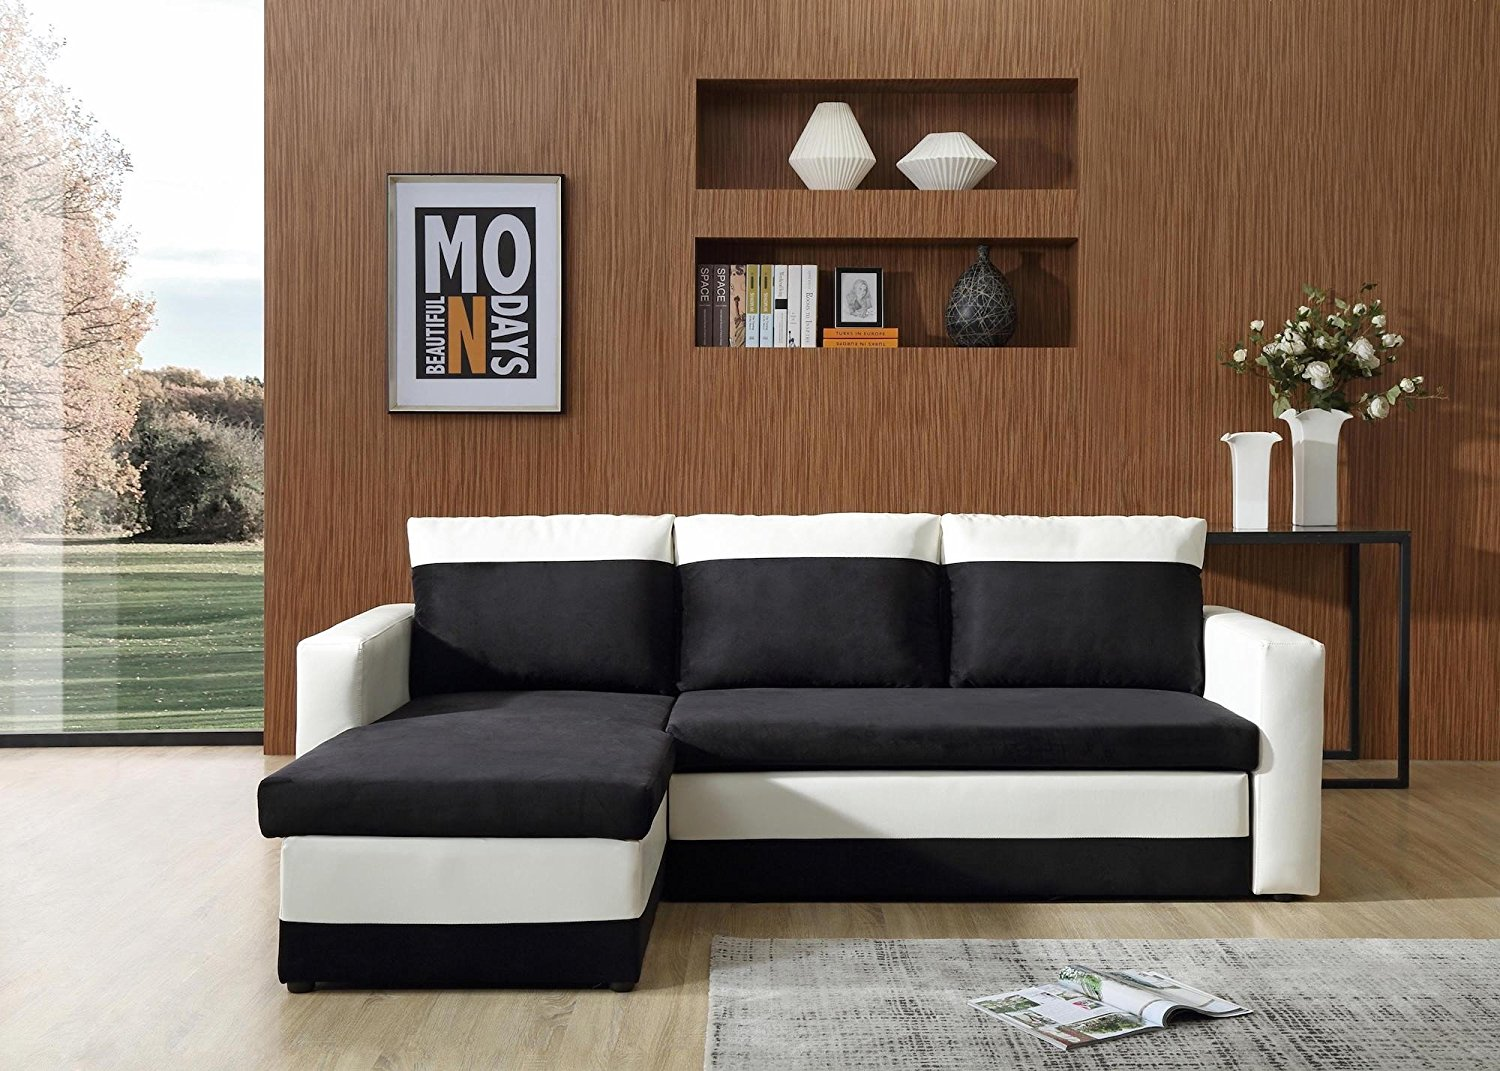 les meilleurs canaps top copenhague sofas cama samoa. Black Bedroom Furniture Sets. Home Design Ideas